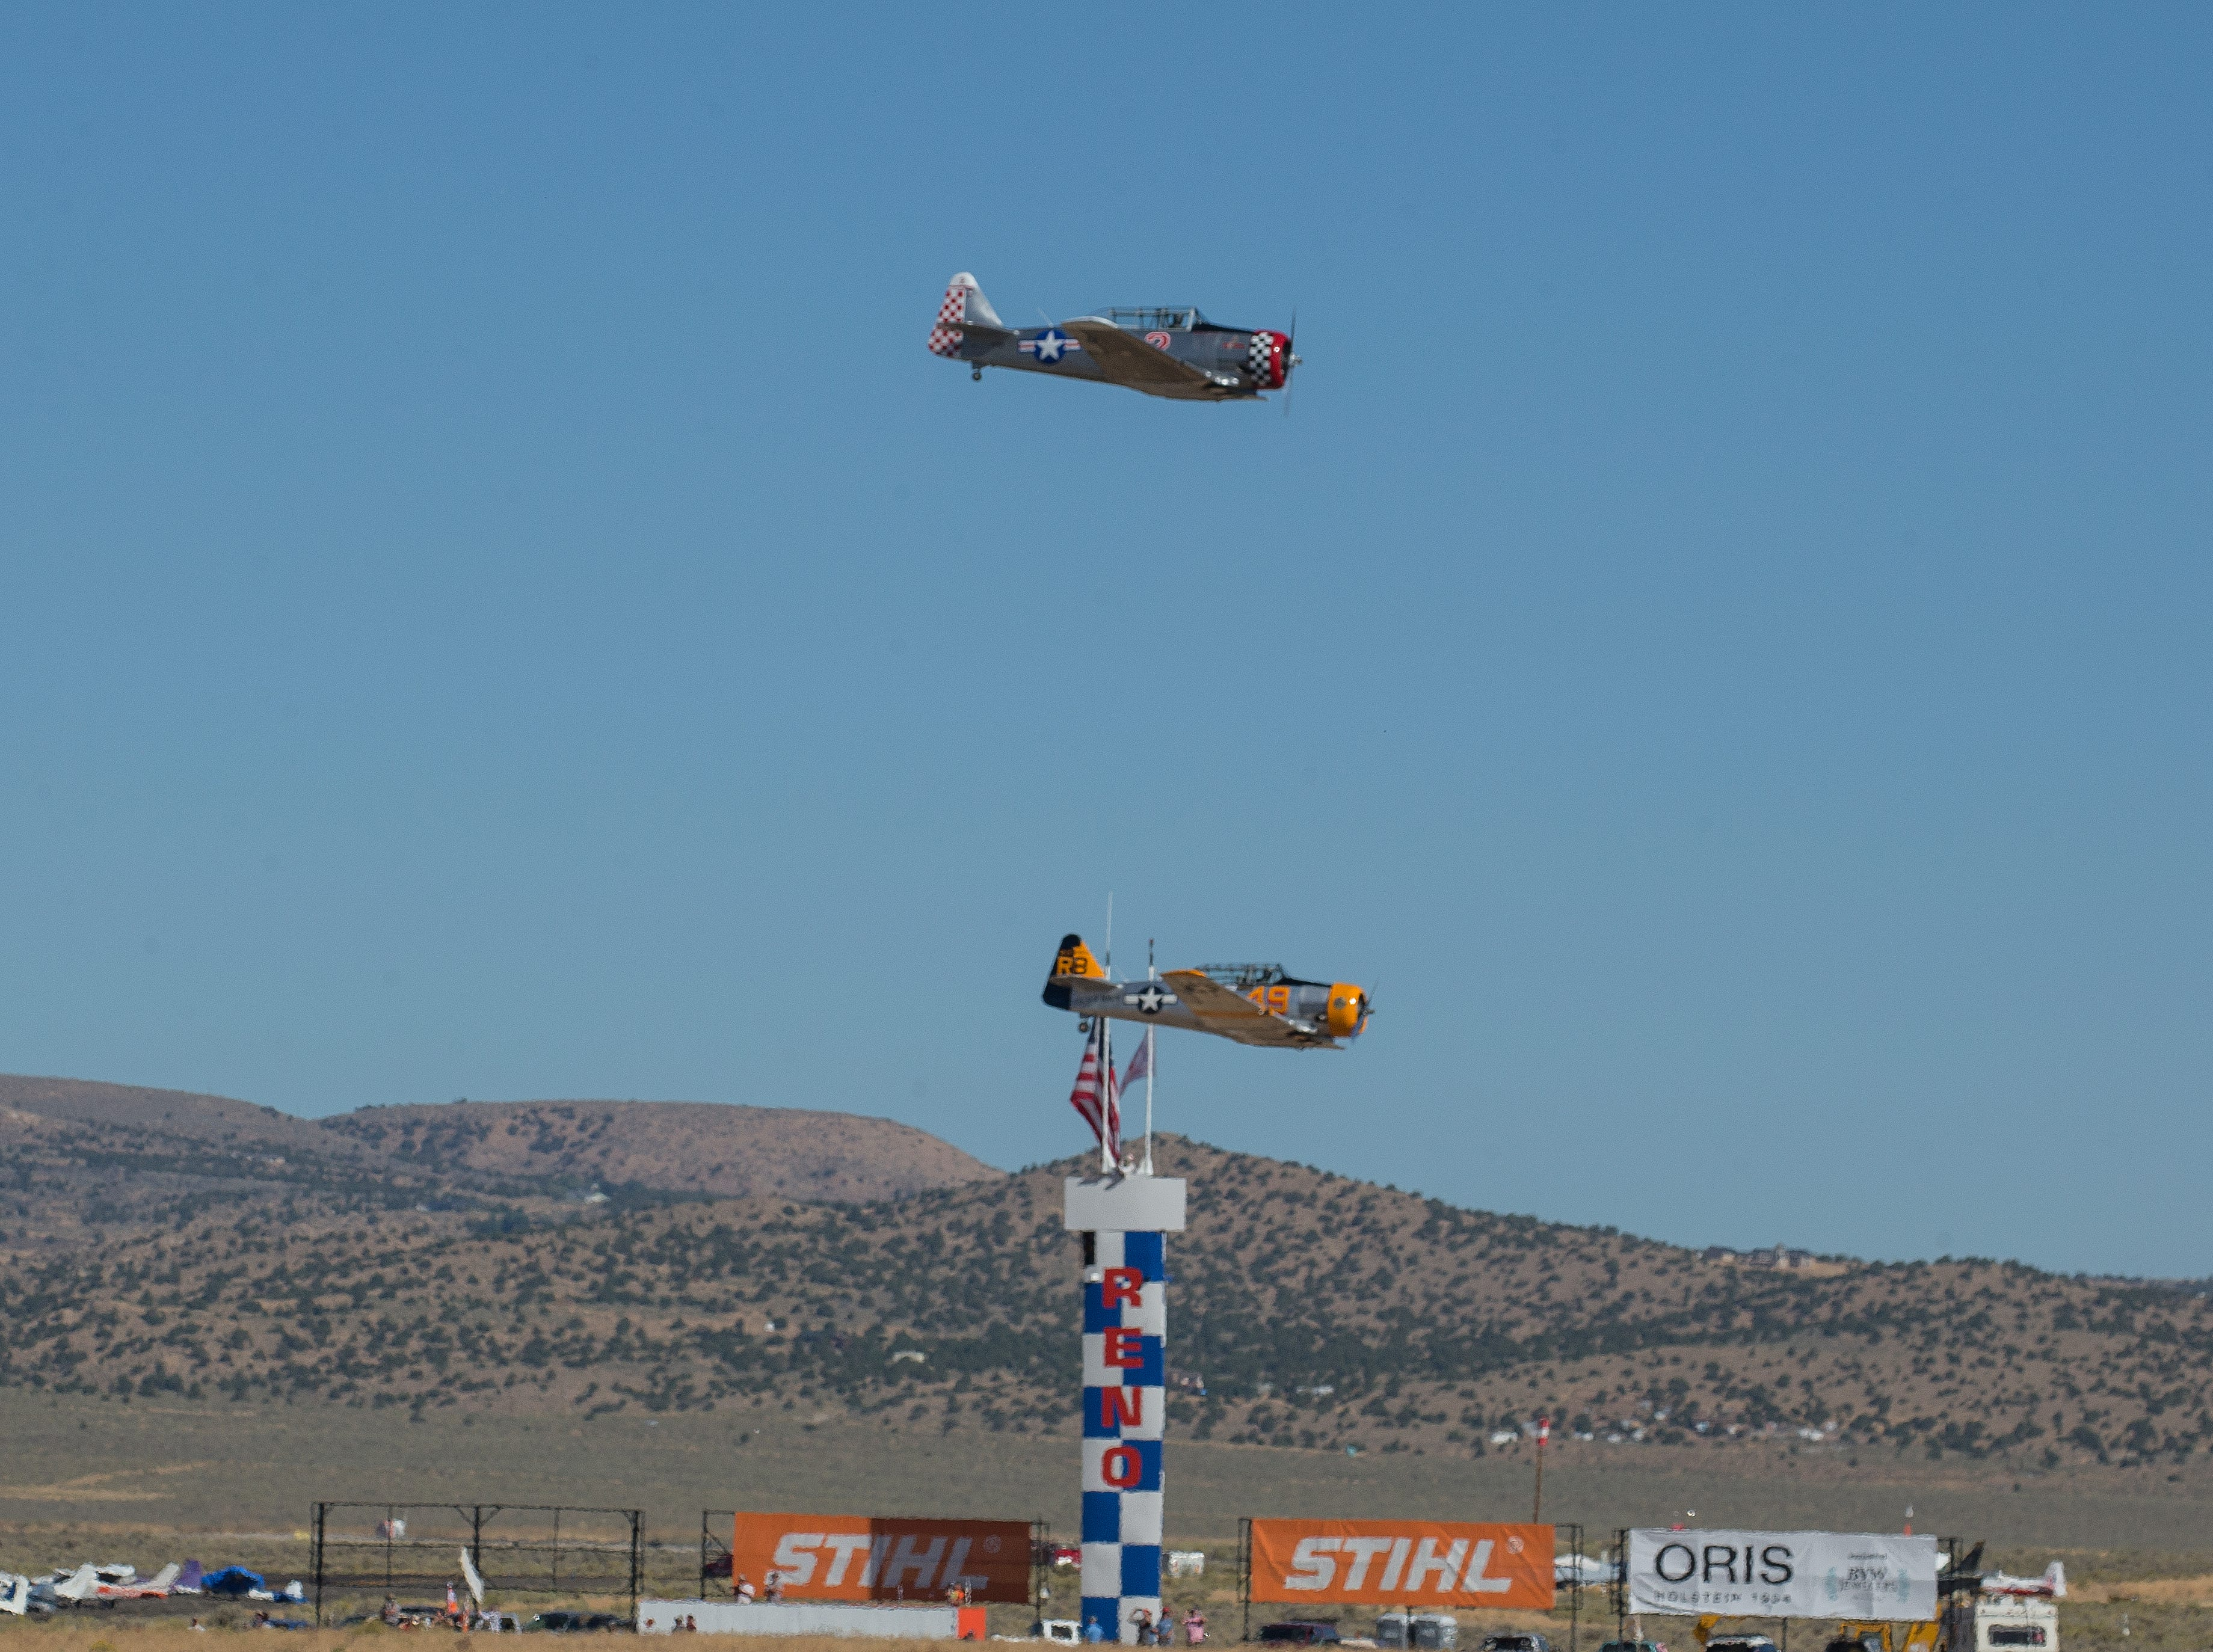 A photograph taken during the Reno National Championship Air Races on Sunday, Sept. 16, 2018.